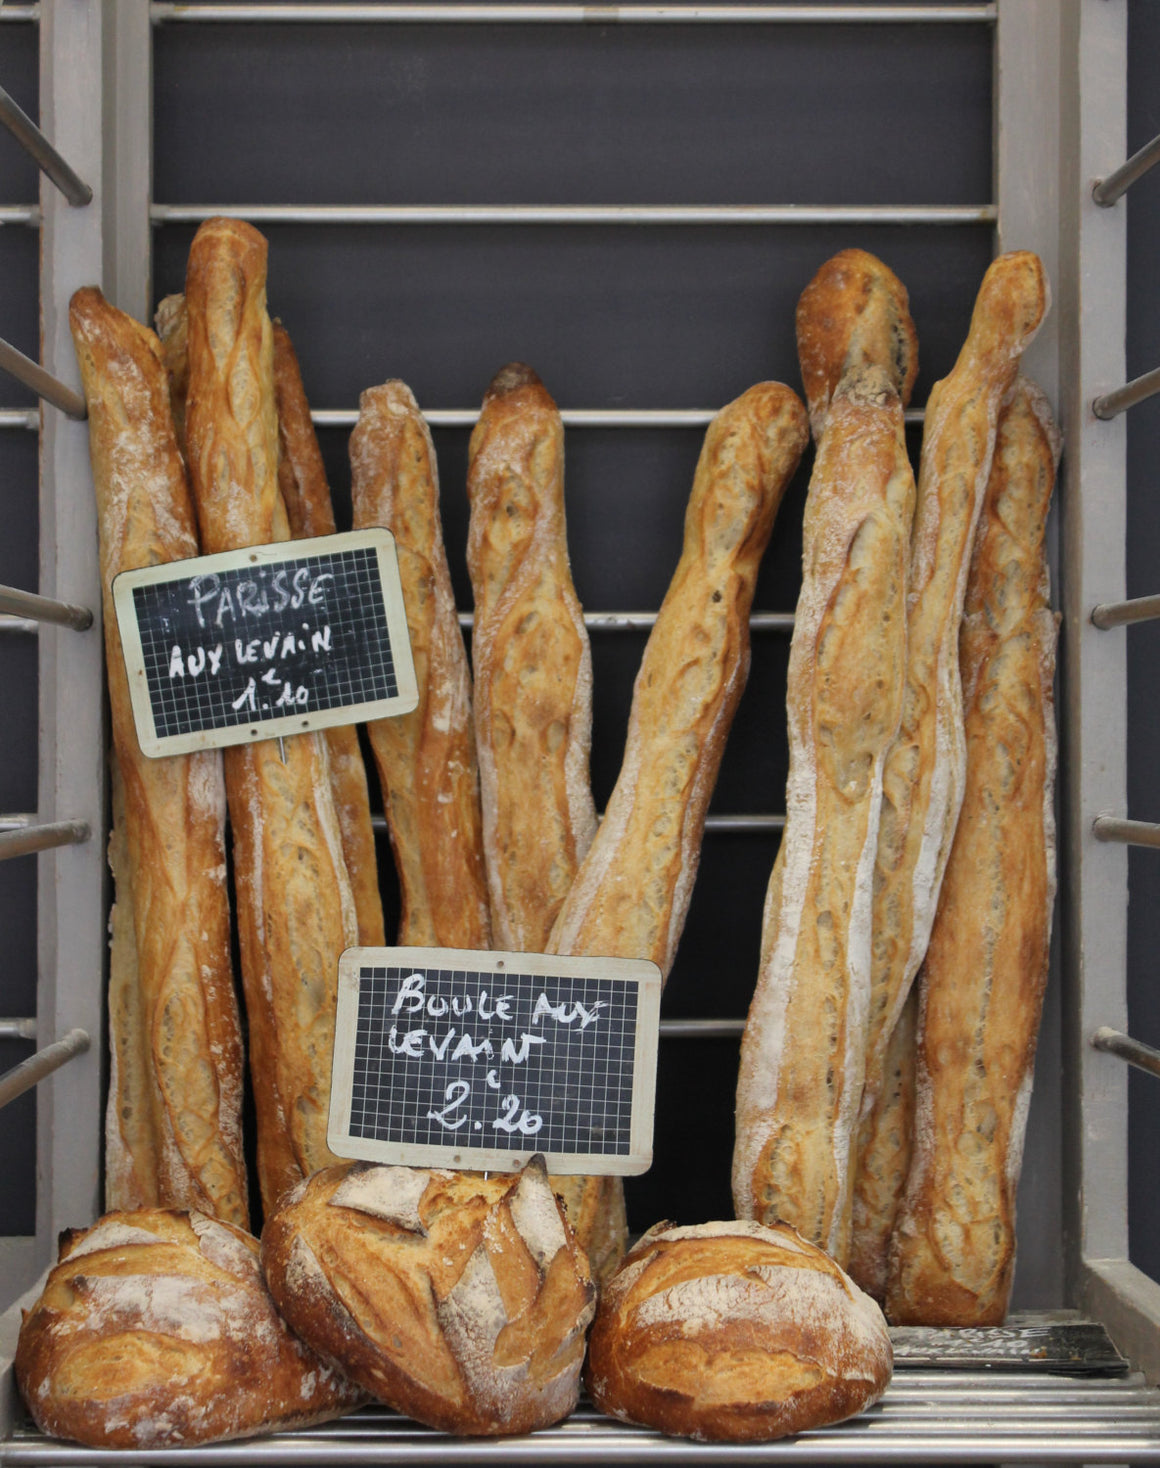 French Baguettes at a Paris Boulangerie